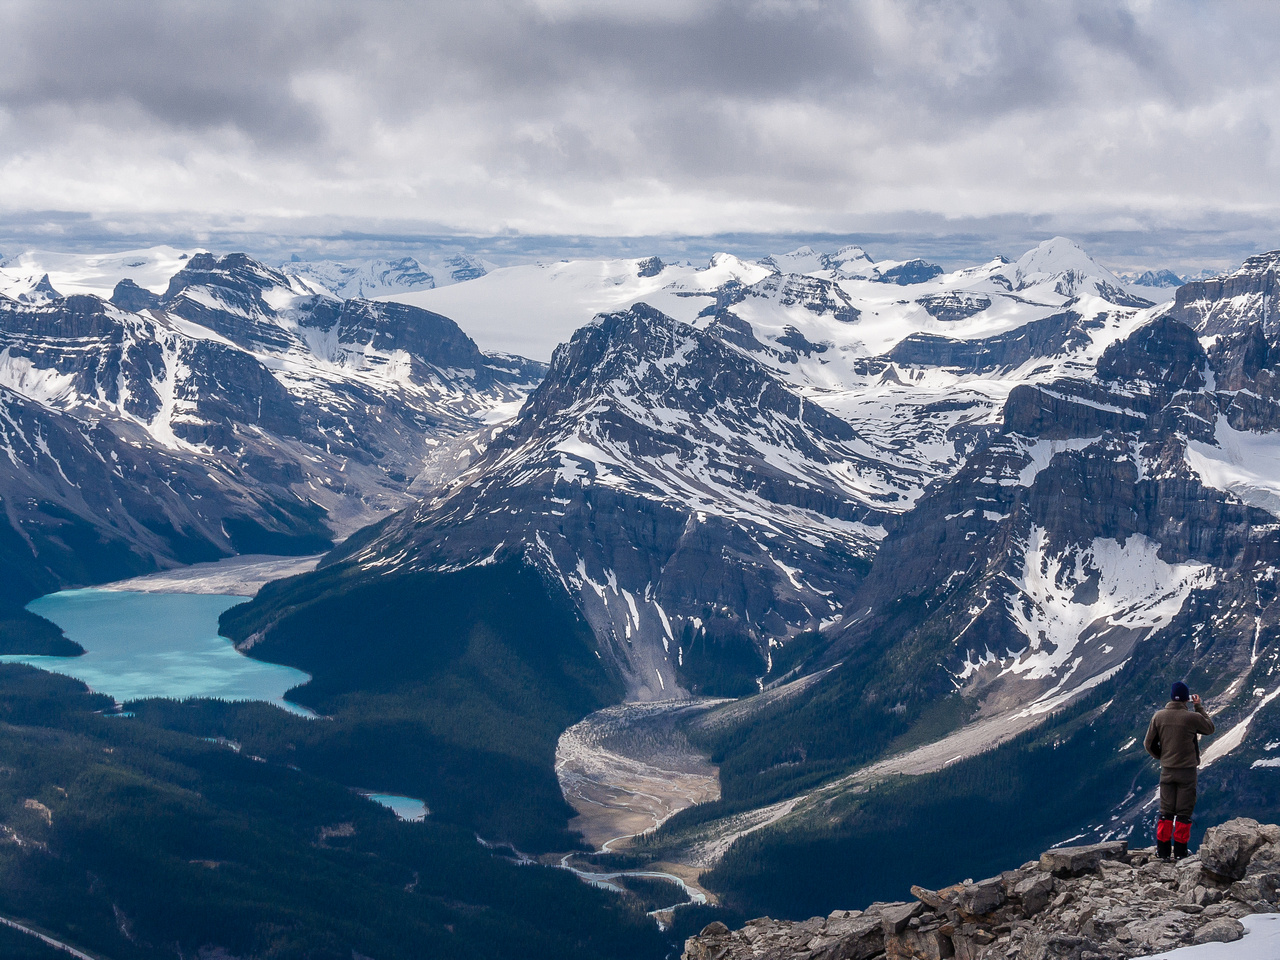 Views over Peyto Lake to Thompson, Habel, Caldron, Mistaya and Baker.